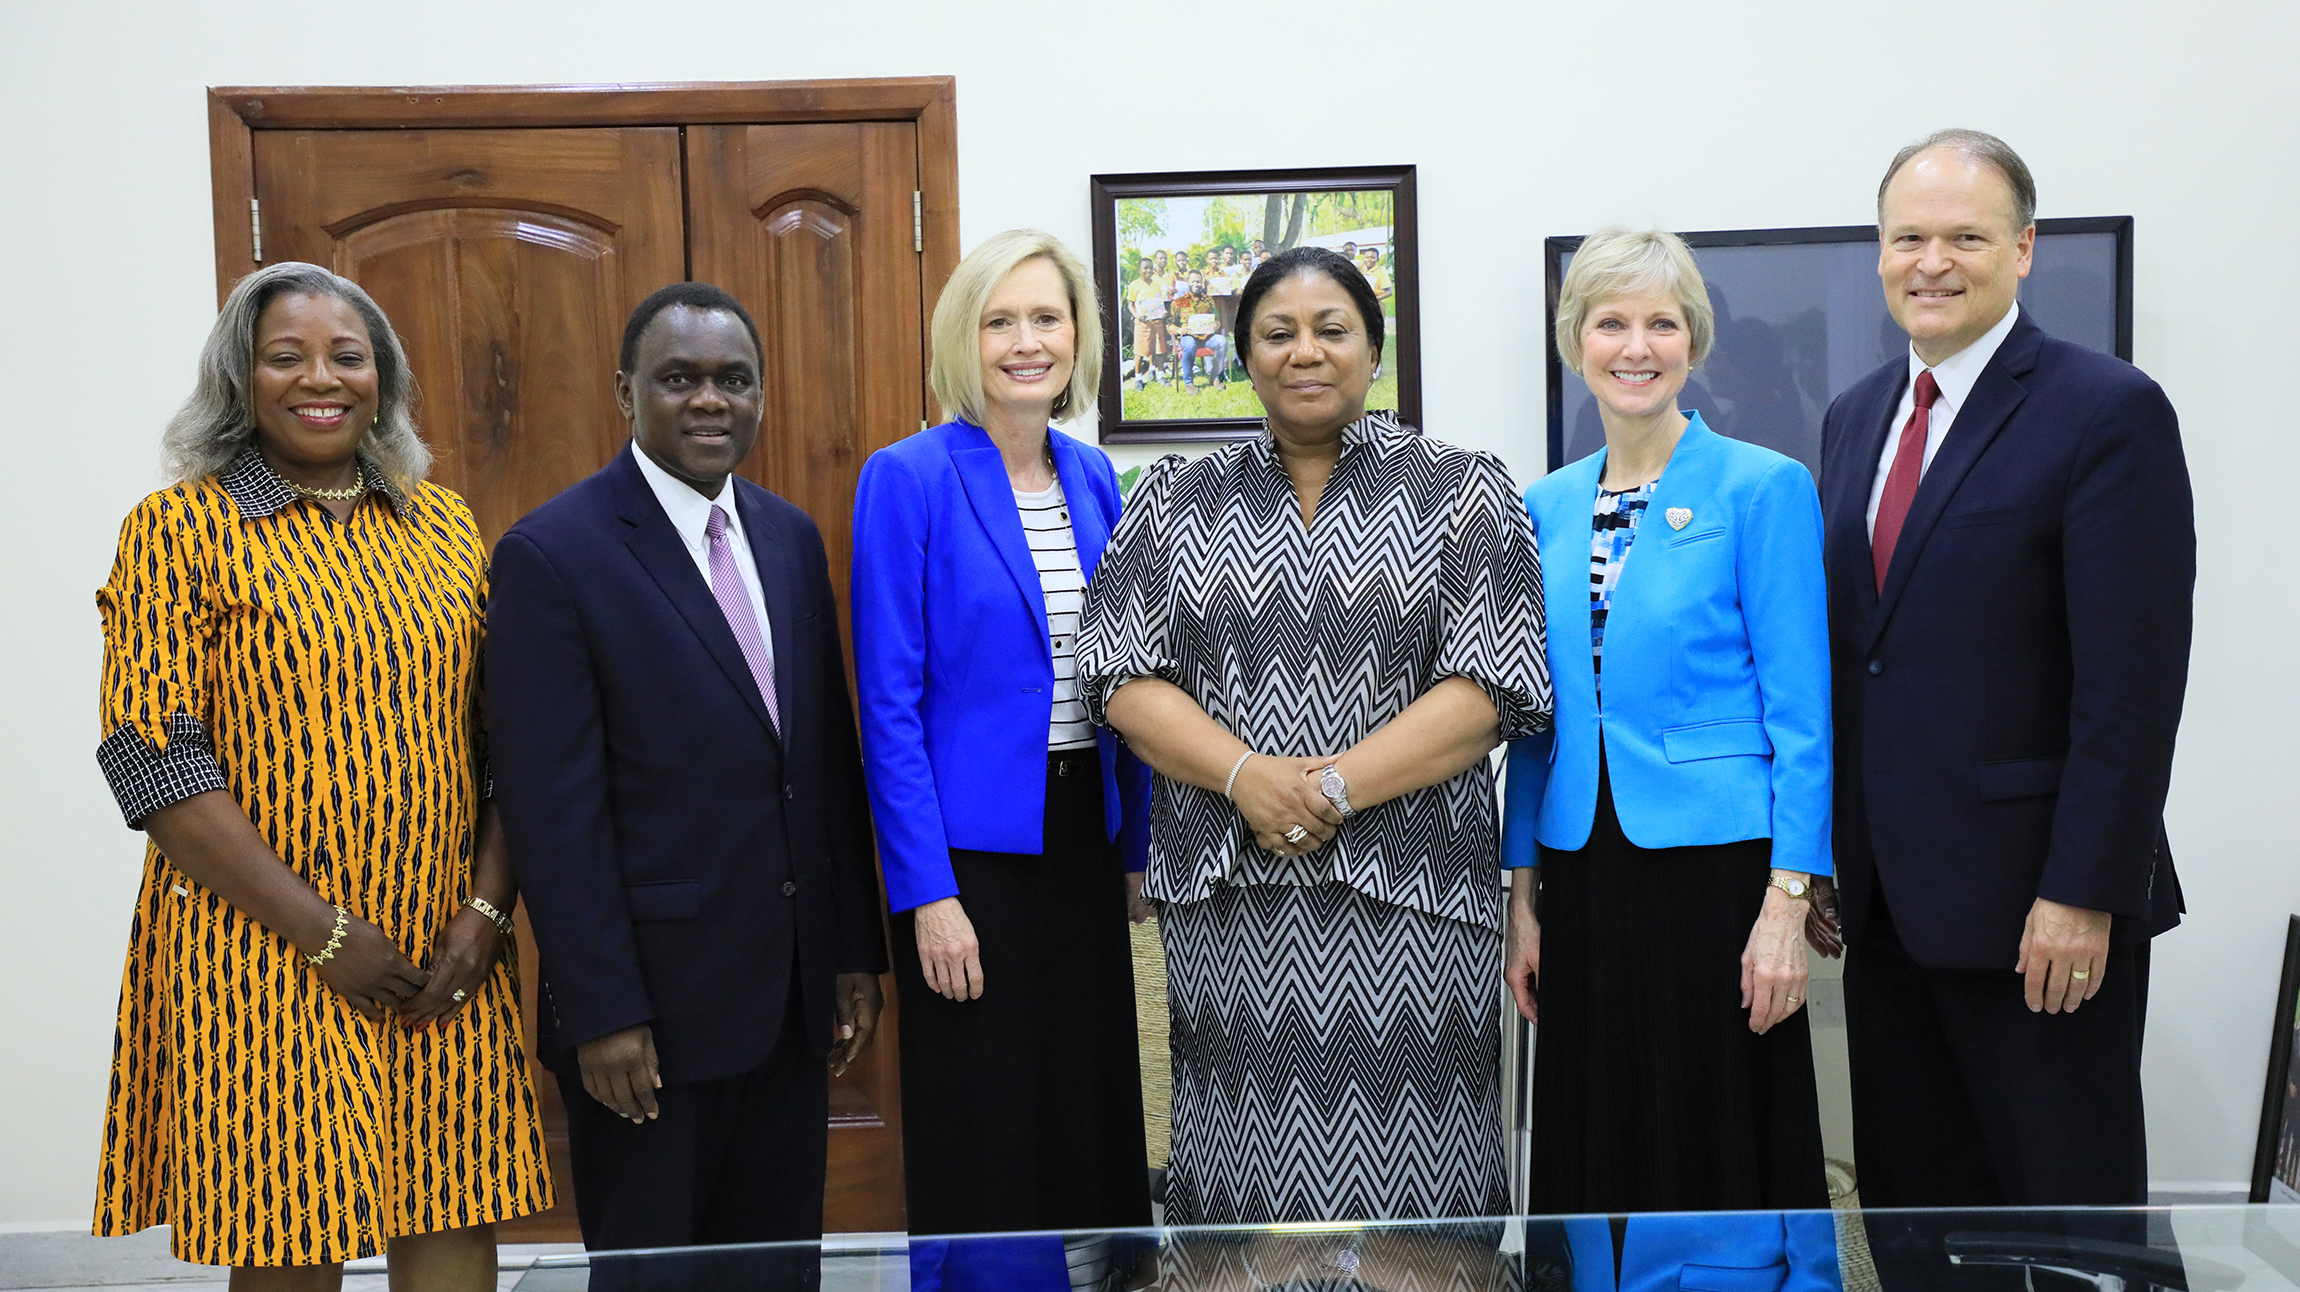 Leaders from The Church of Jesus Christ of Latter-day Saints visit Rebecca Naa Okaikor Akufo-Addo (center), the first lady of the Republic of Ghana, at North Ridge in Accra, Friday, March 1, 2019.